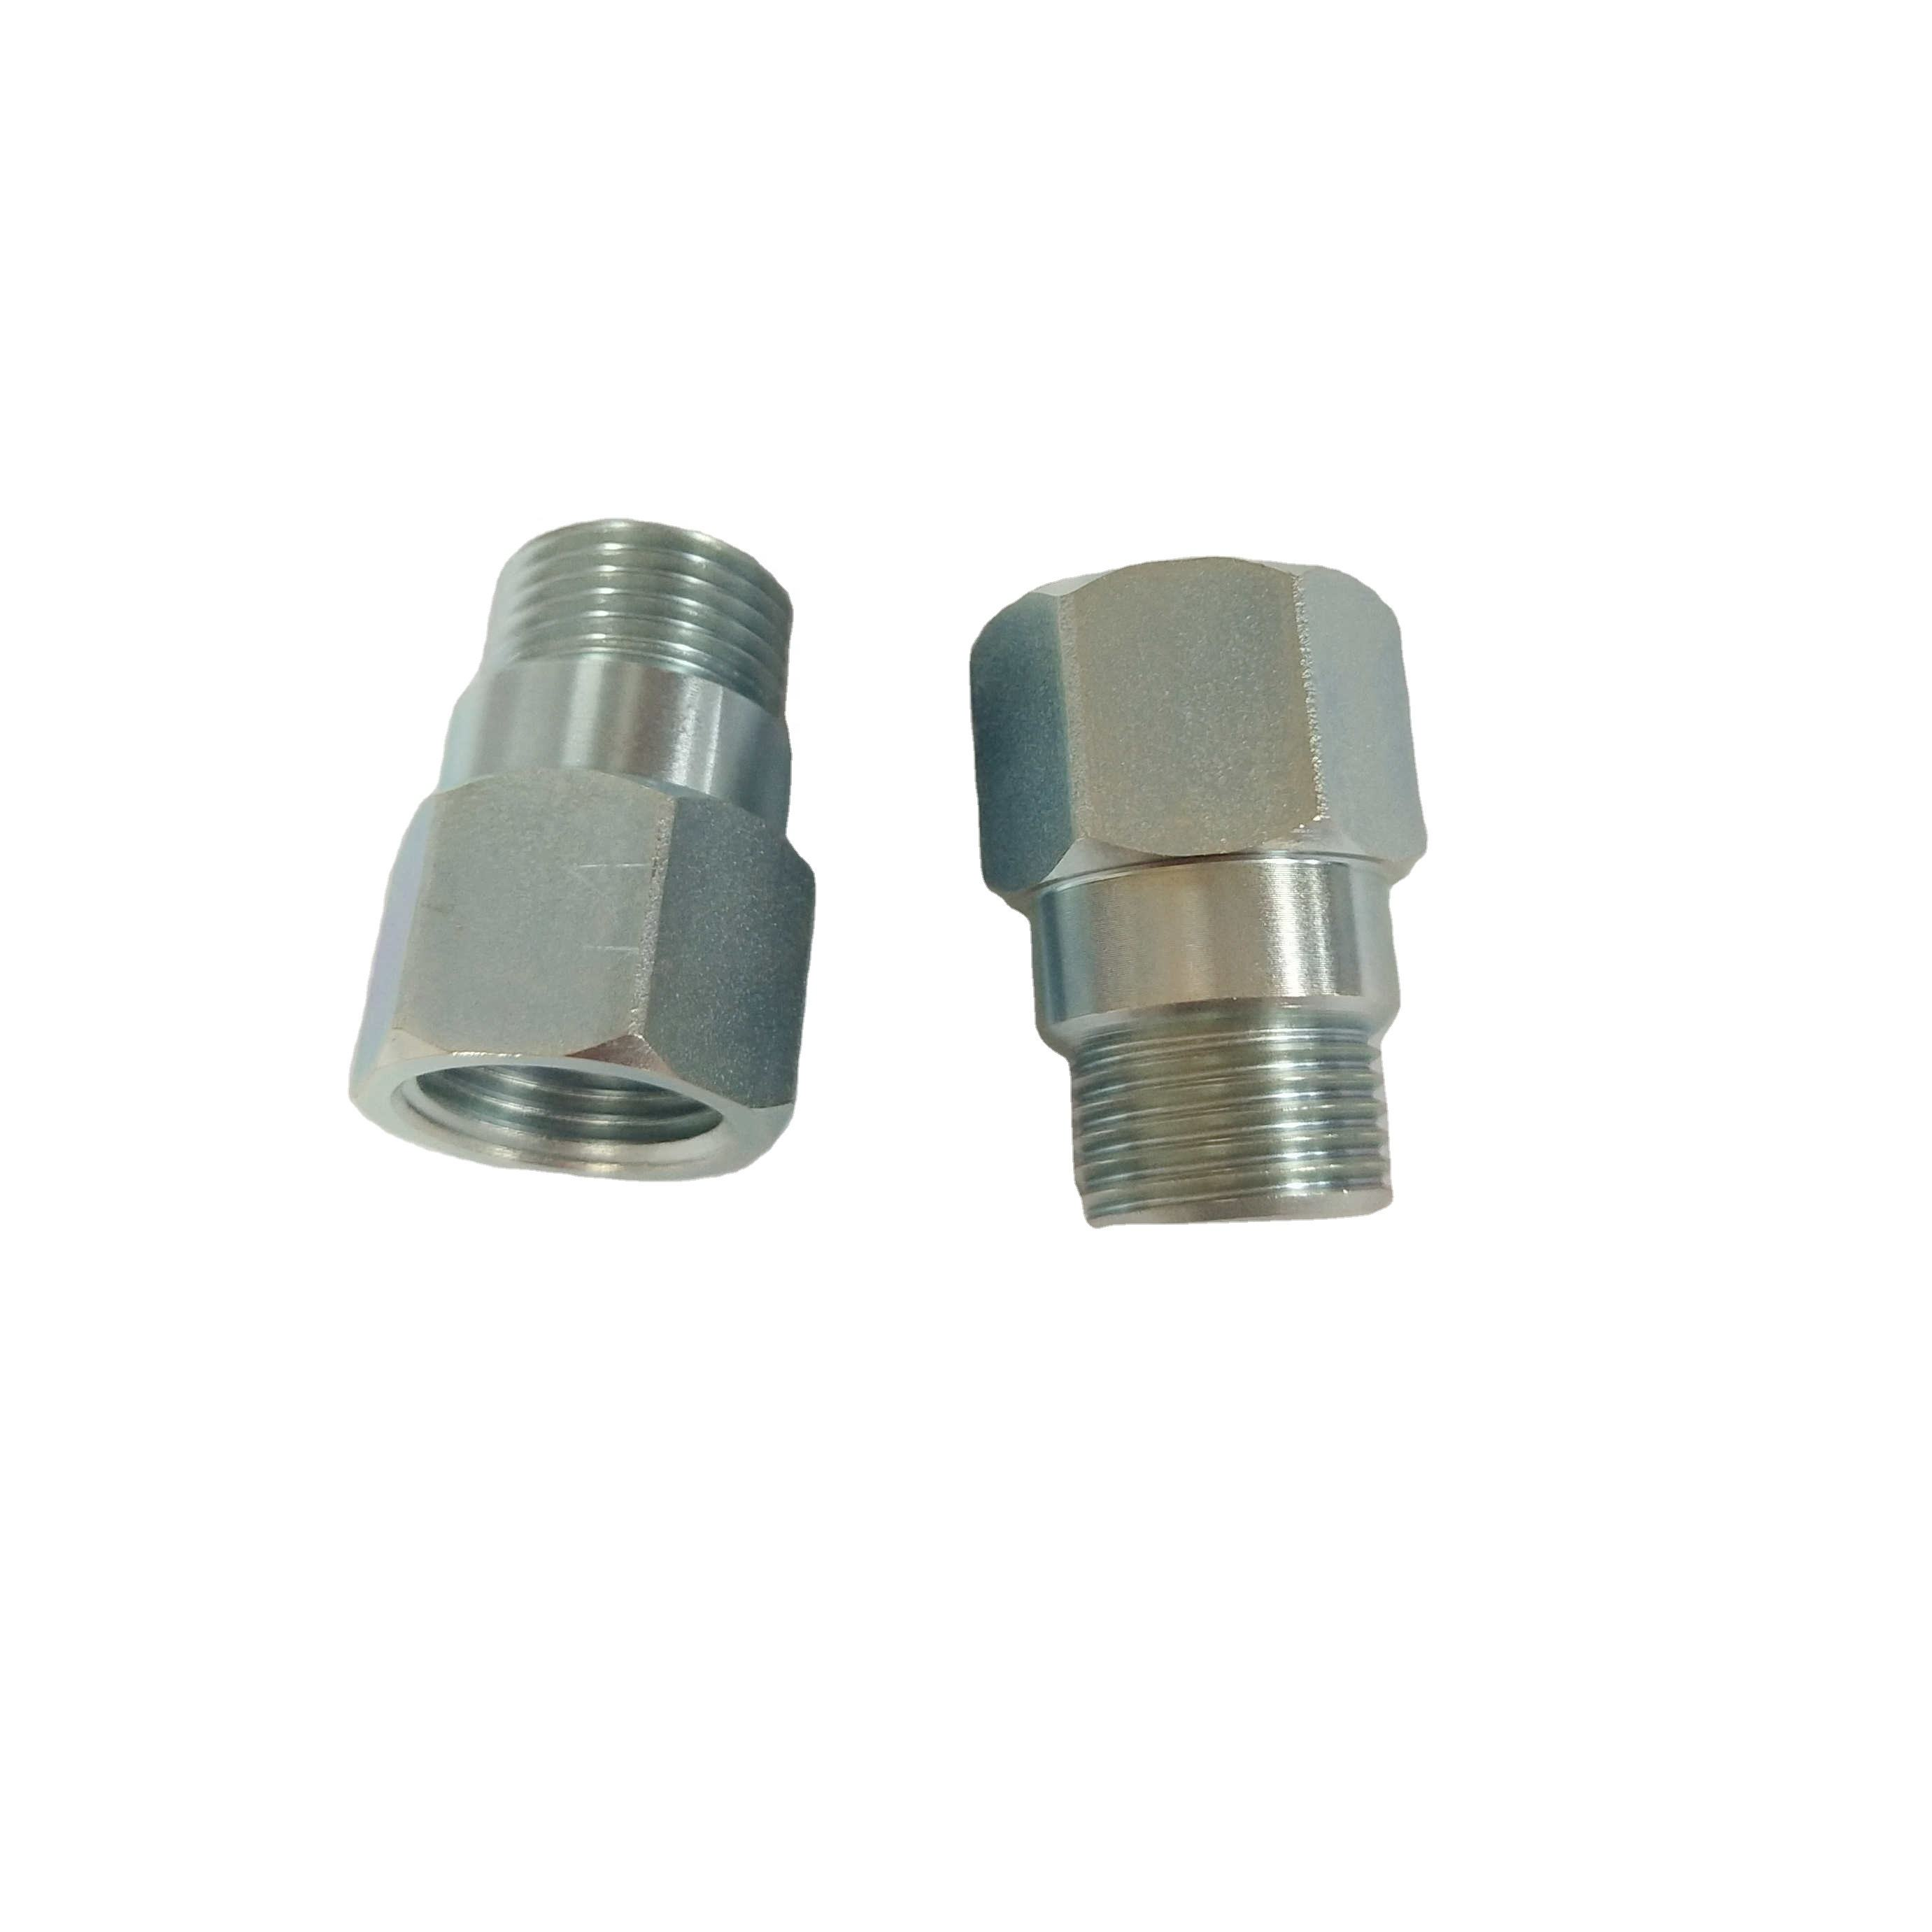 Newest cnc turning mild steel 34mm long oxygen sensor spacer with M18*1.5